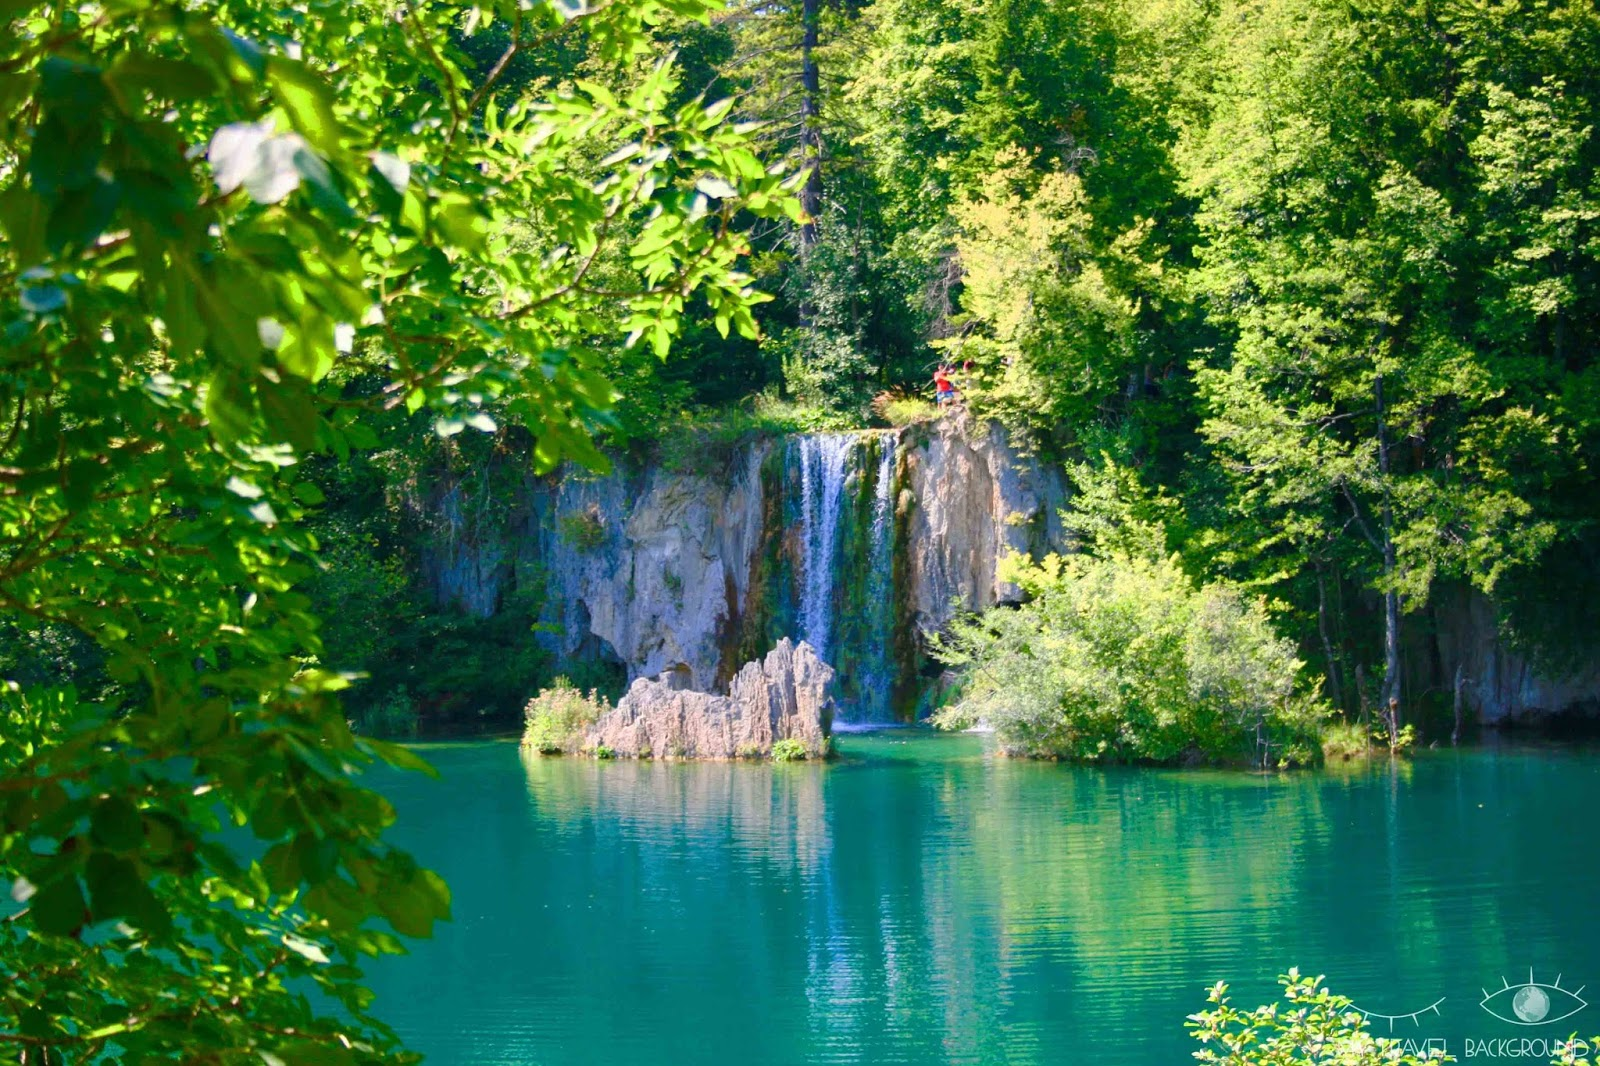 My Travel Background : top 5 de mes souvenirs 2017 ! Lacs de Plitvice Croatie